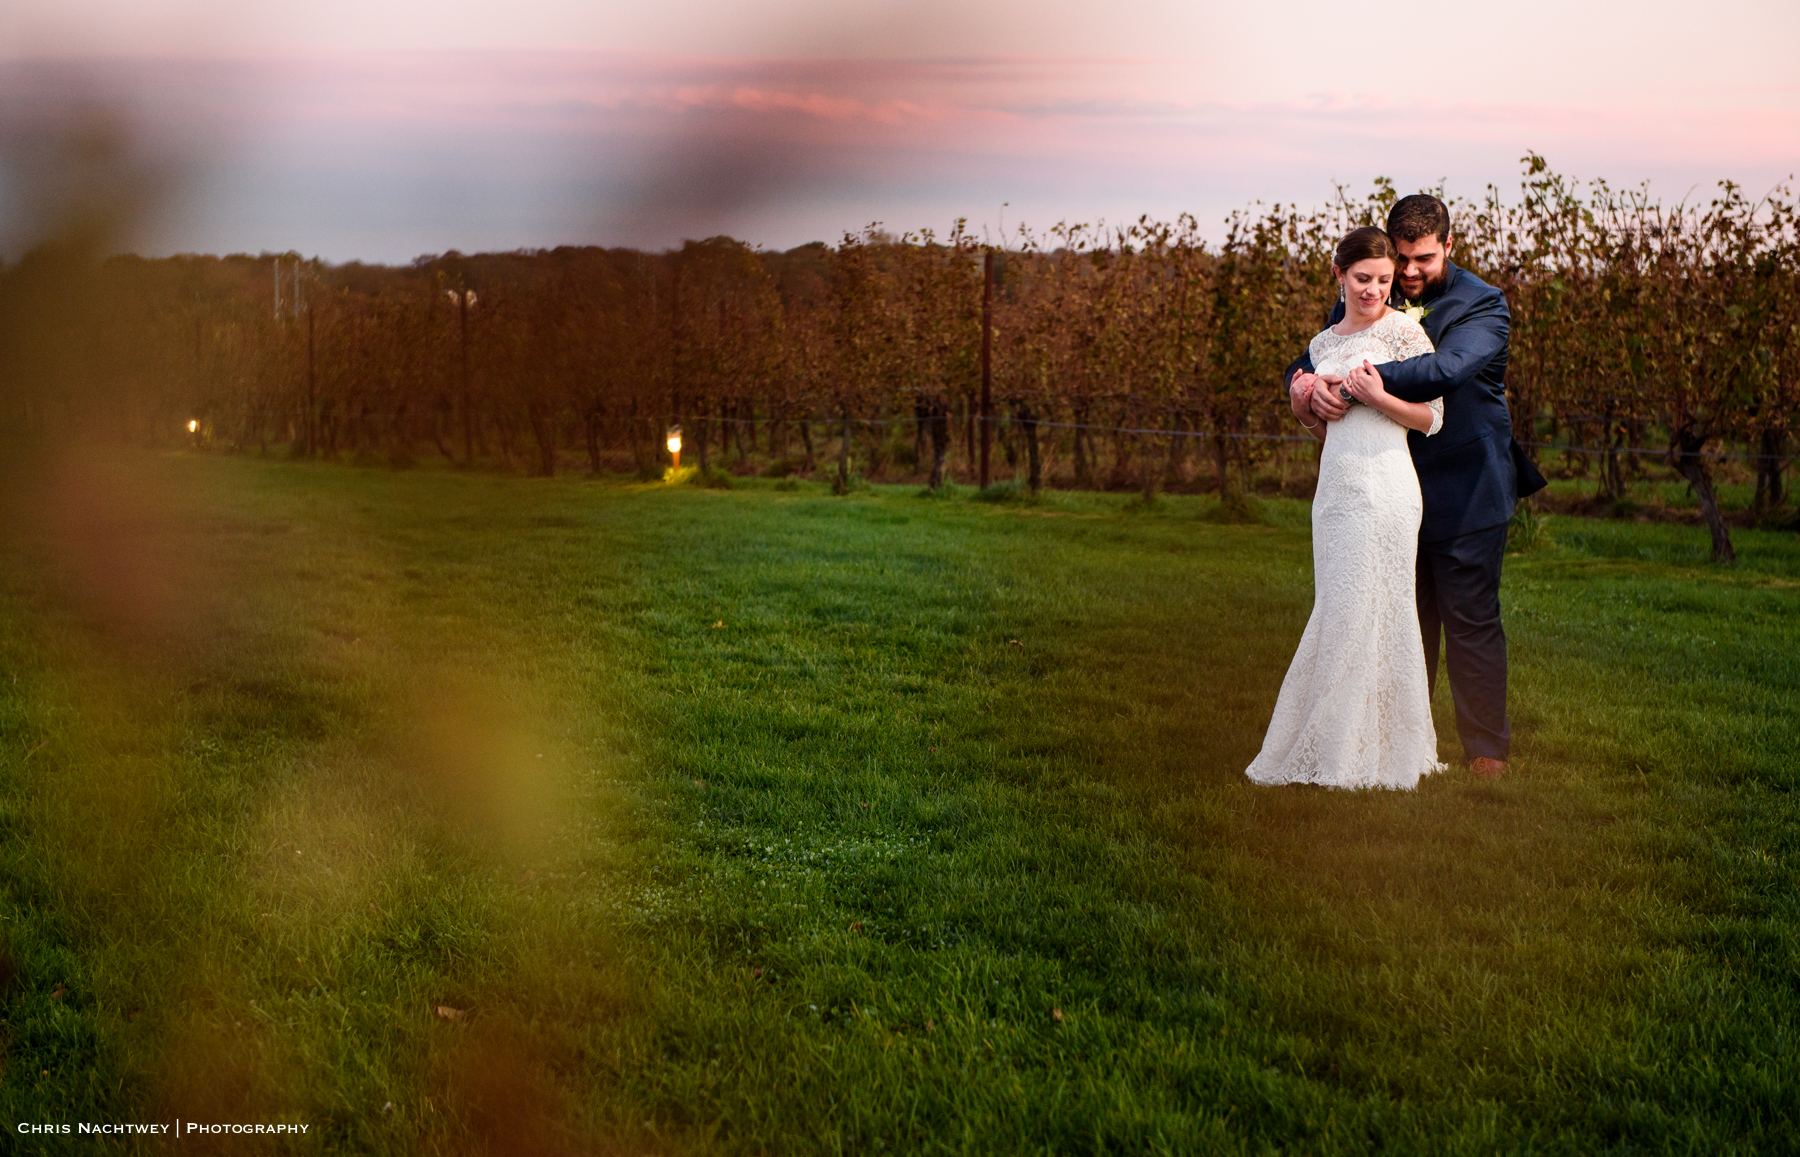 photos-wedding-fall-saltwater-farm-vineyard-chris-nachtwey-photography-21.jpg